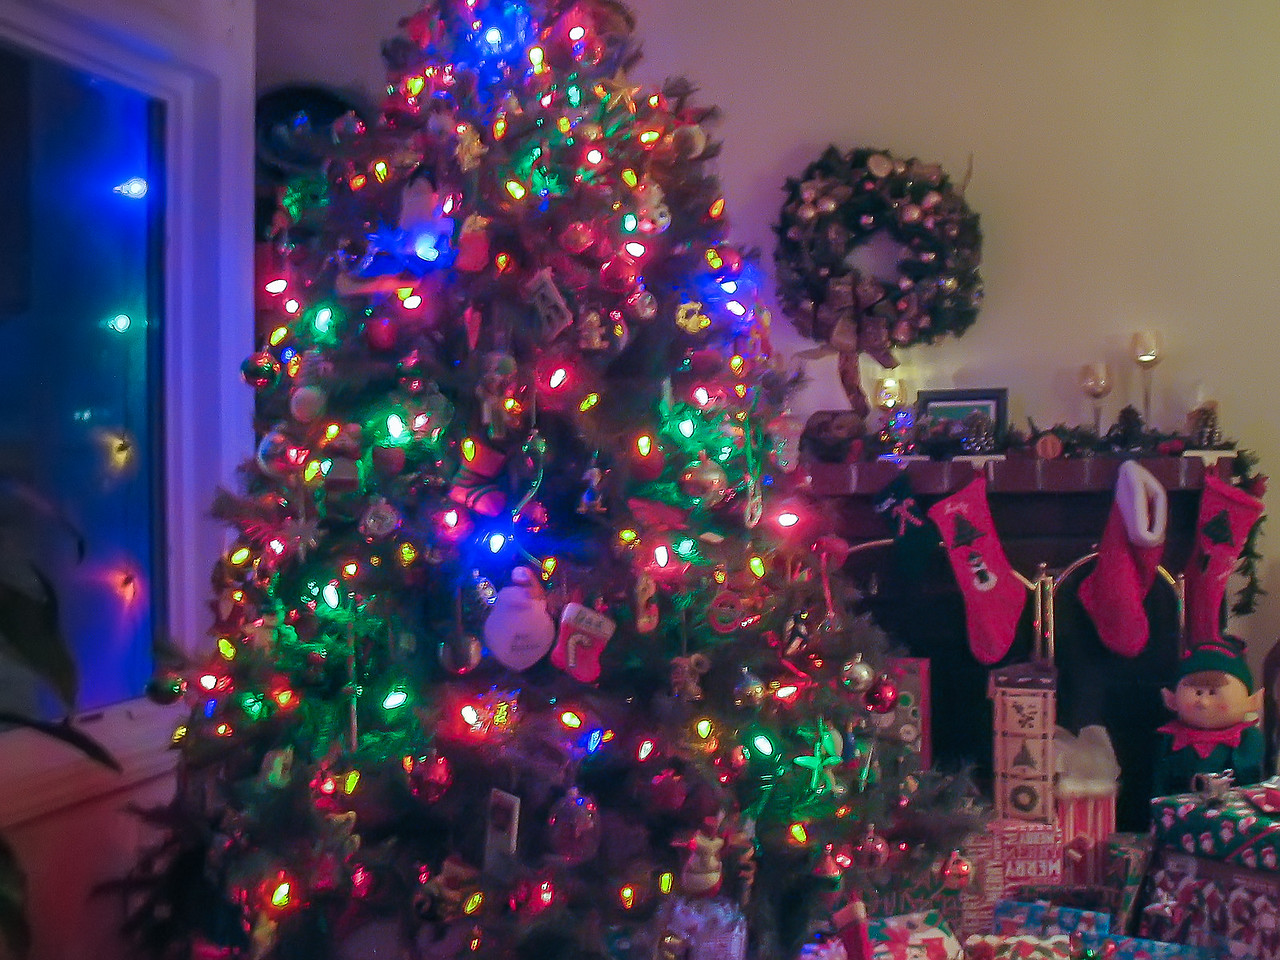 Christmas tree aglow with lights and surrounded by presents and stocking and decorations